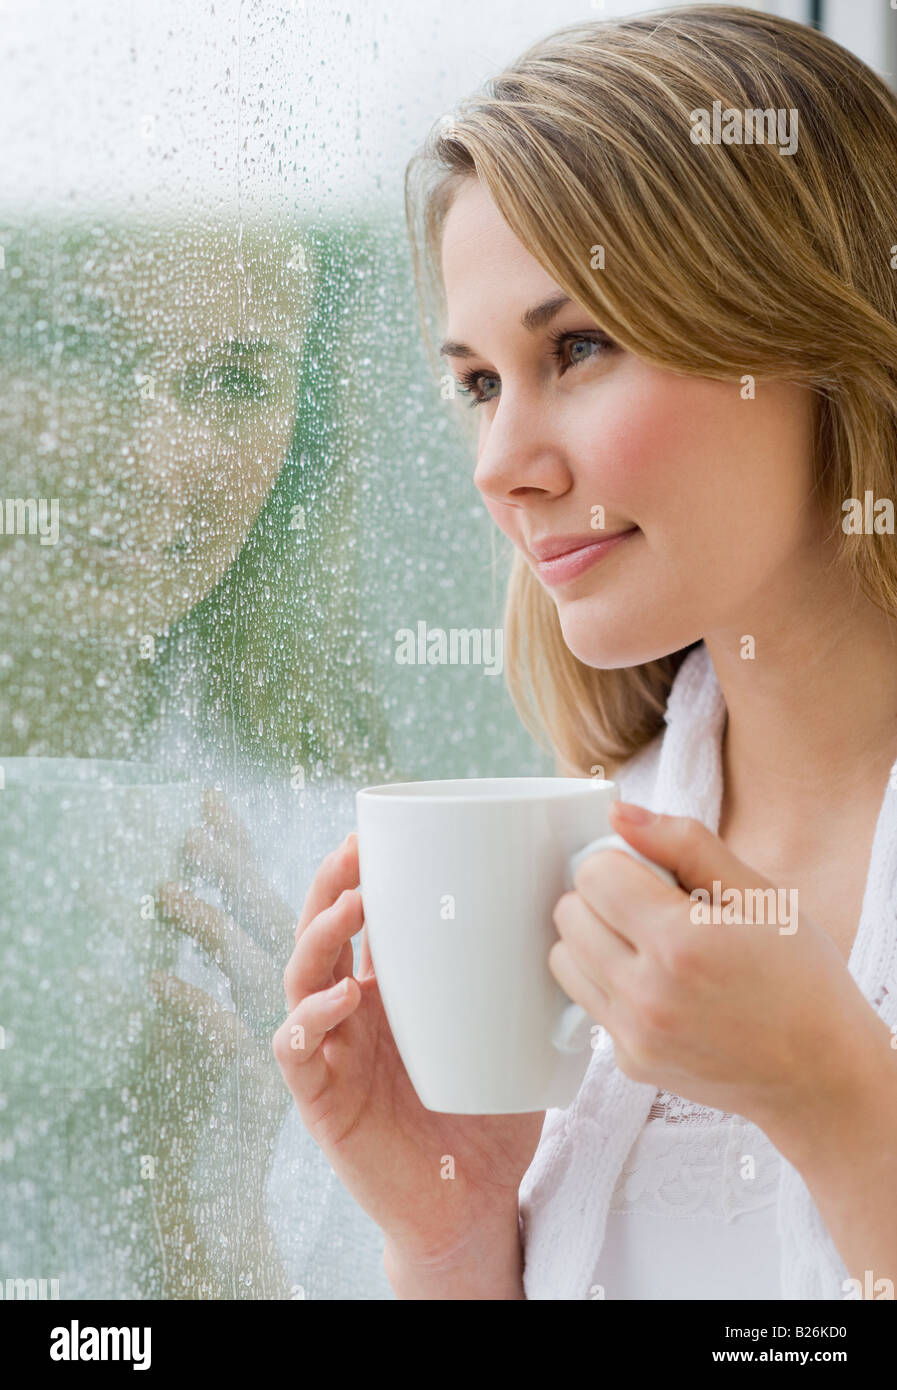 Woman looking out rainy window - Stock Image